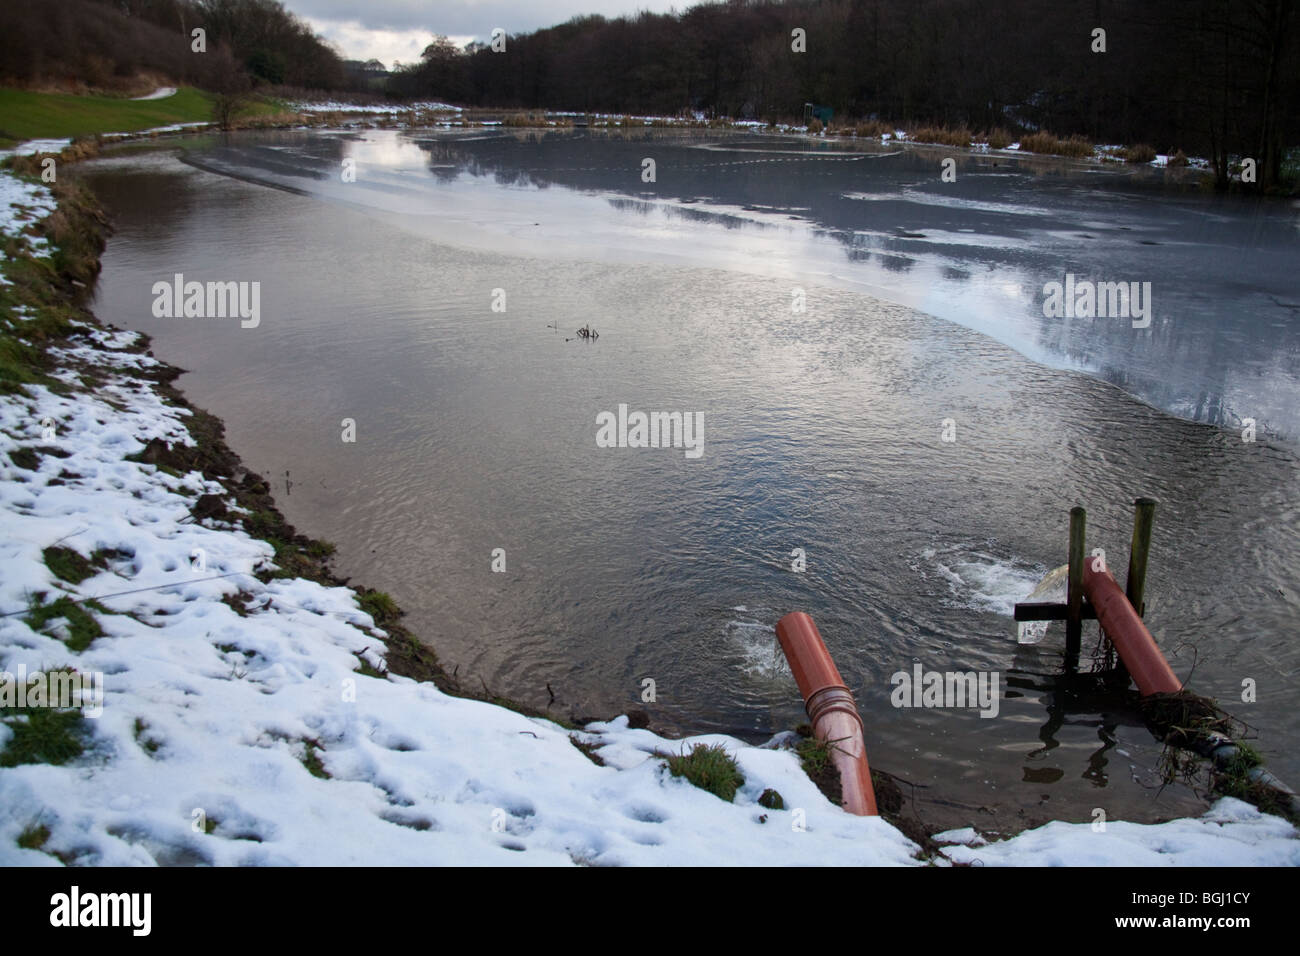 Barlow fishery trout lakes river Derbyshire England. - Stock Image